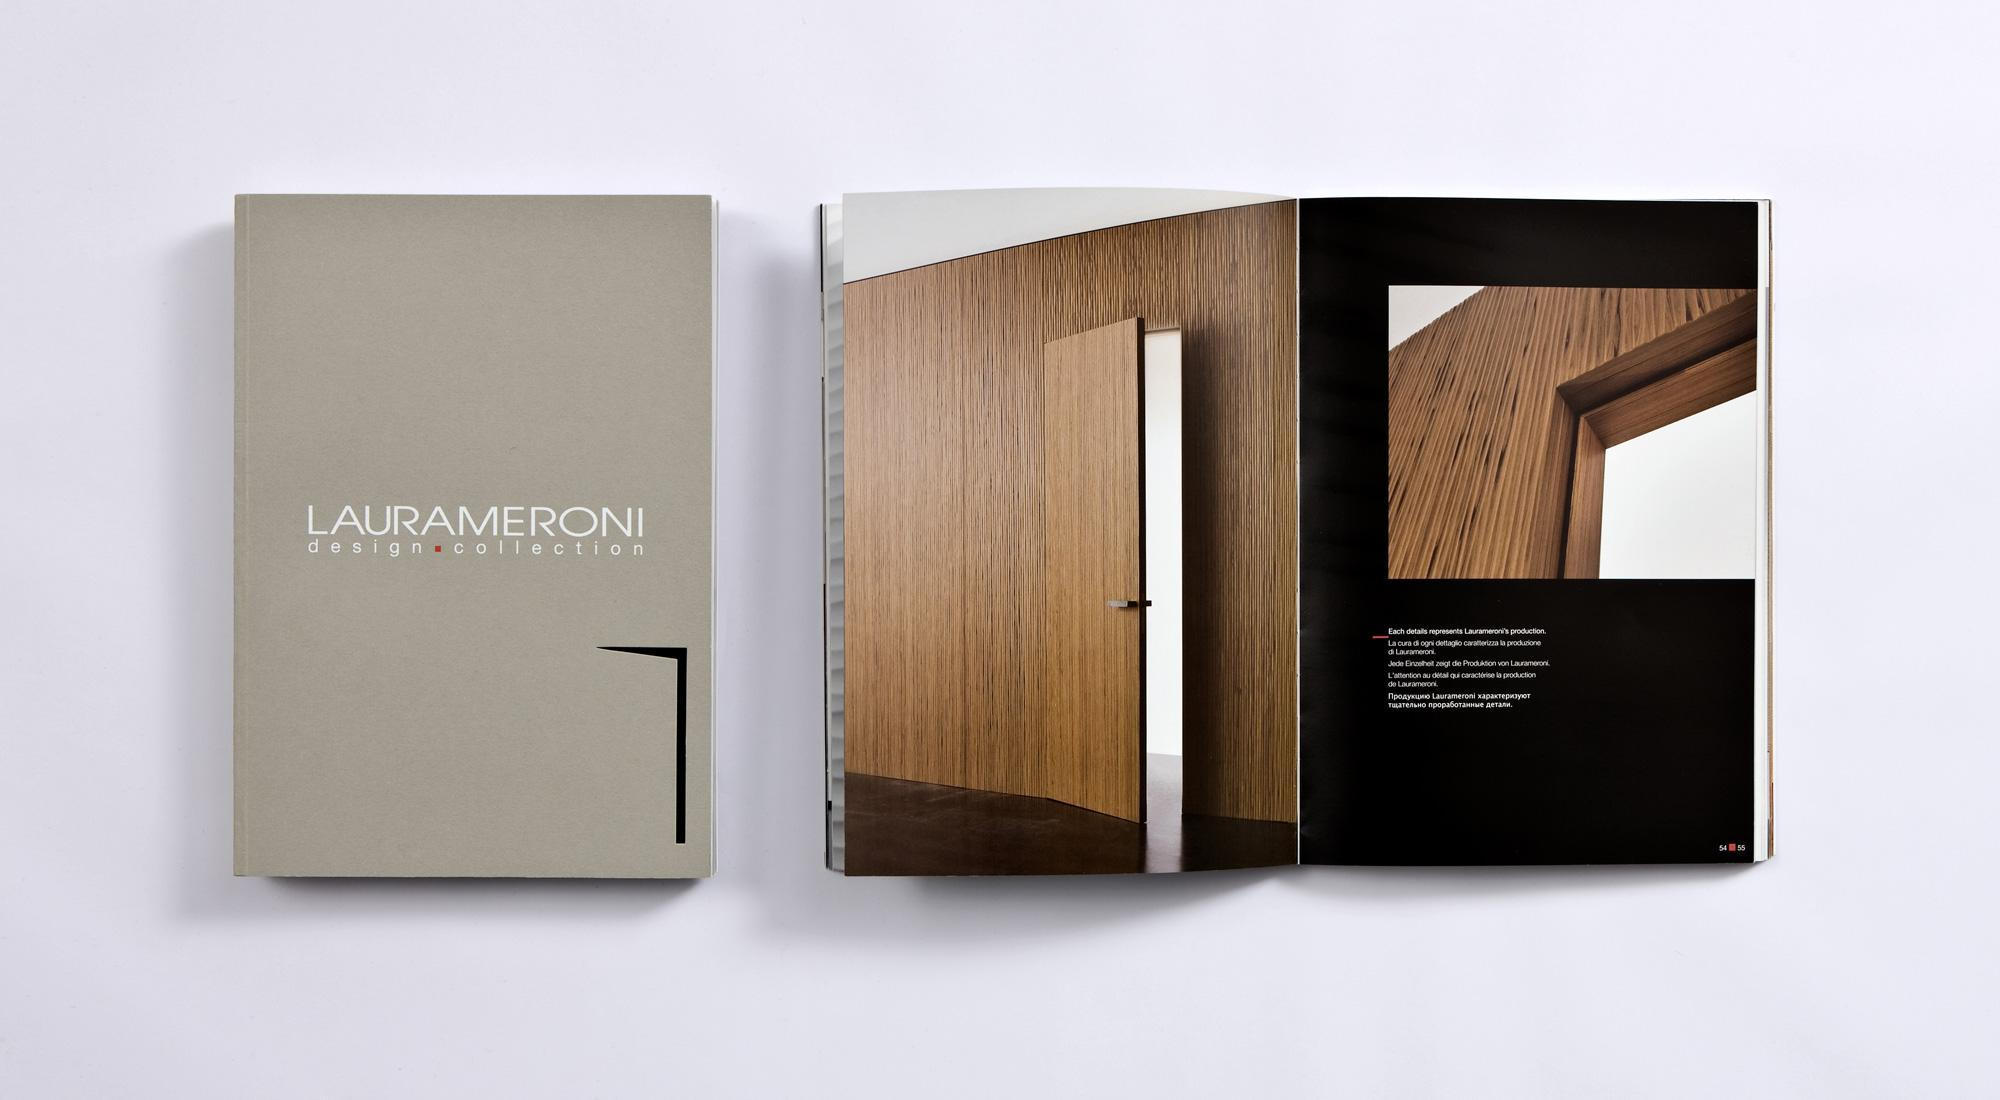 laurameroni design collection luxury doors and wall panels catalogue free download